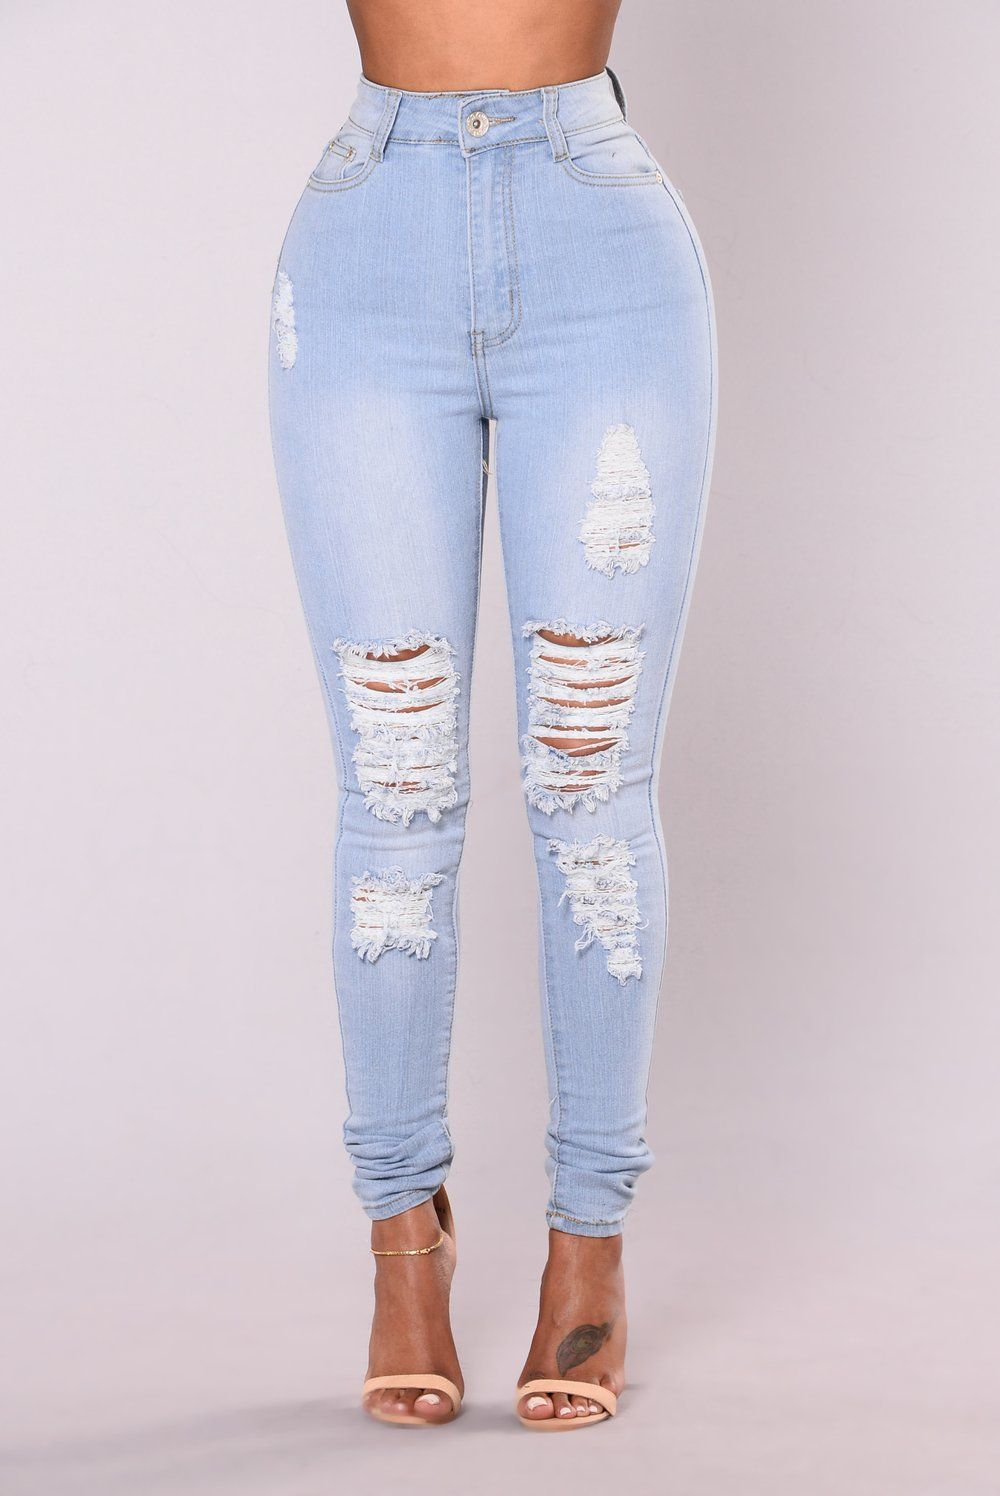 Tempe Distressed Jeans Light Wash Distressed Jeans Super Skinny Ripped Jeans Cute Ripped Jeans